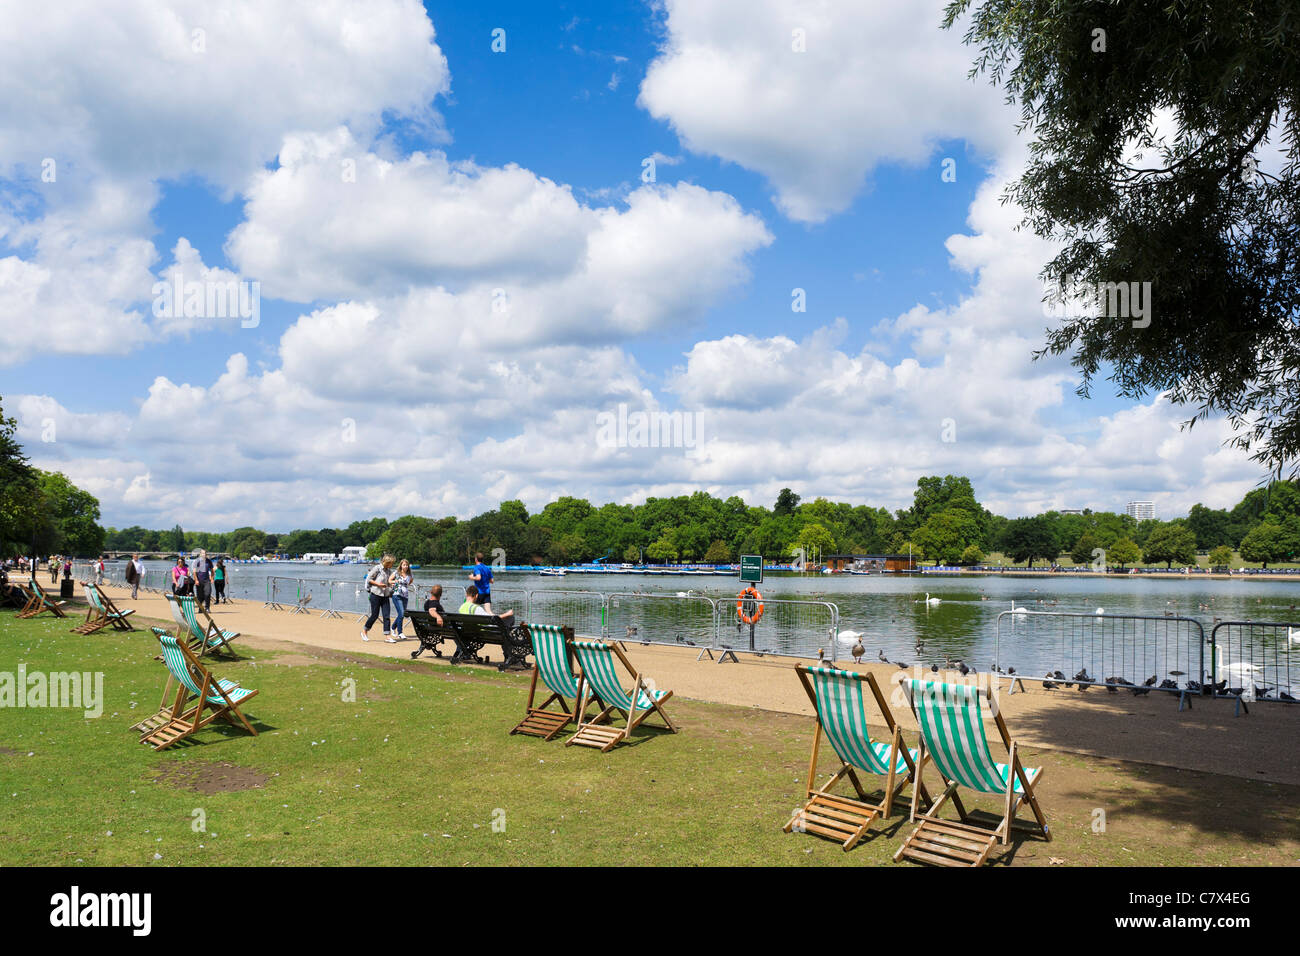 Deckchairs by The Serpentine in Hyde Park, London, England, UK - Stock Image